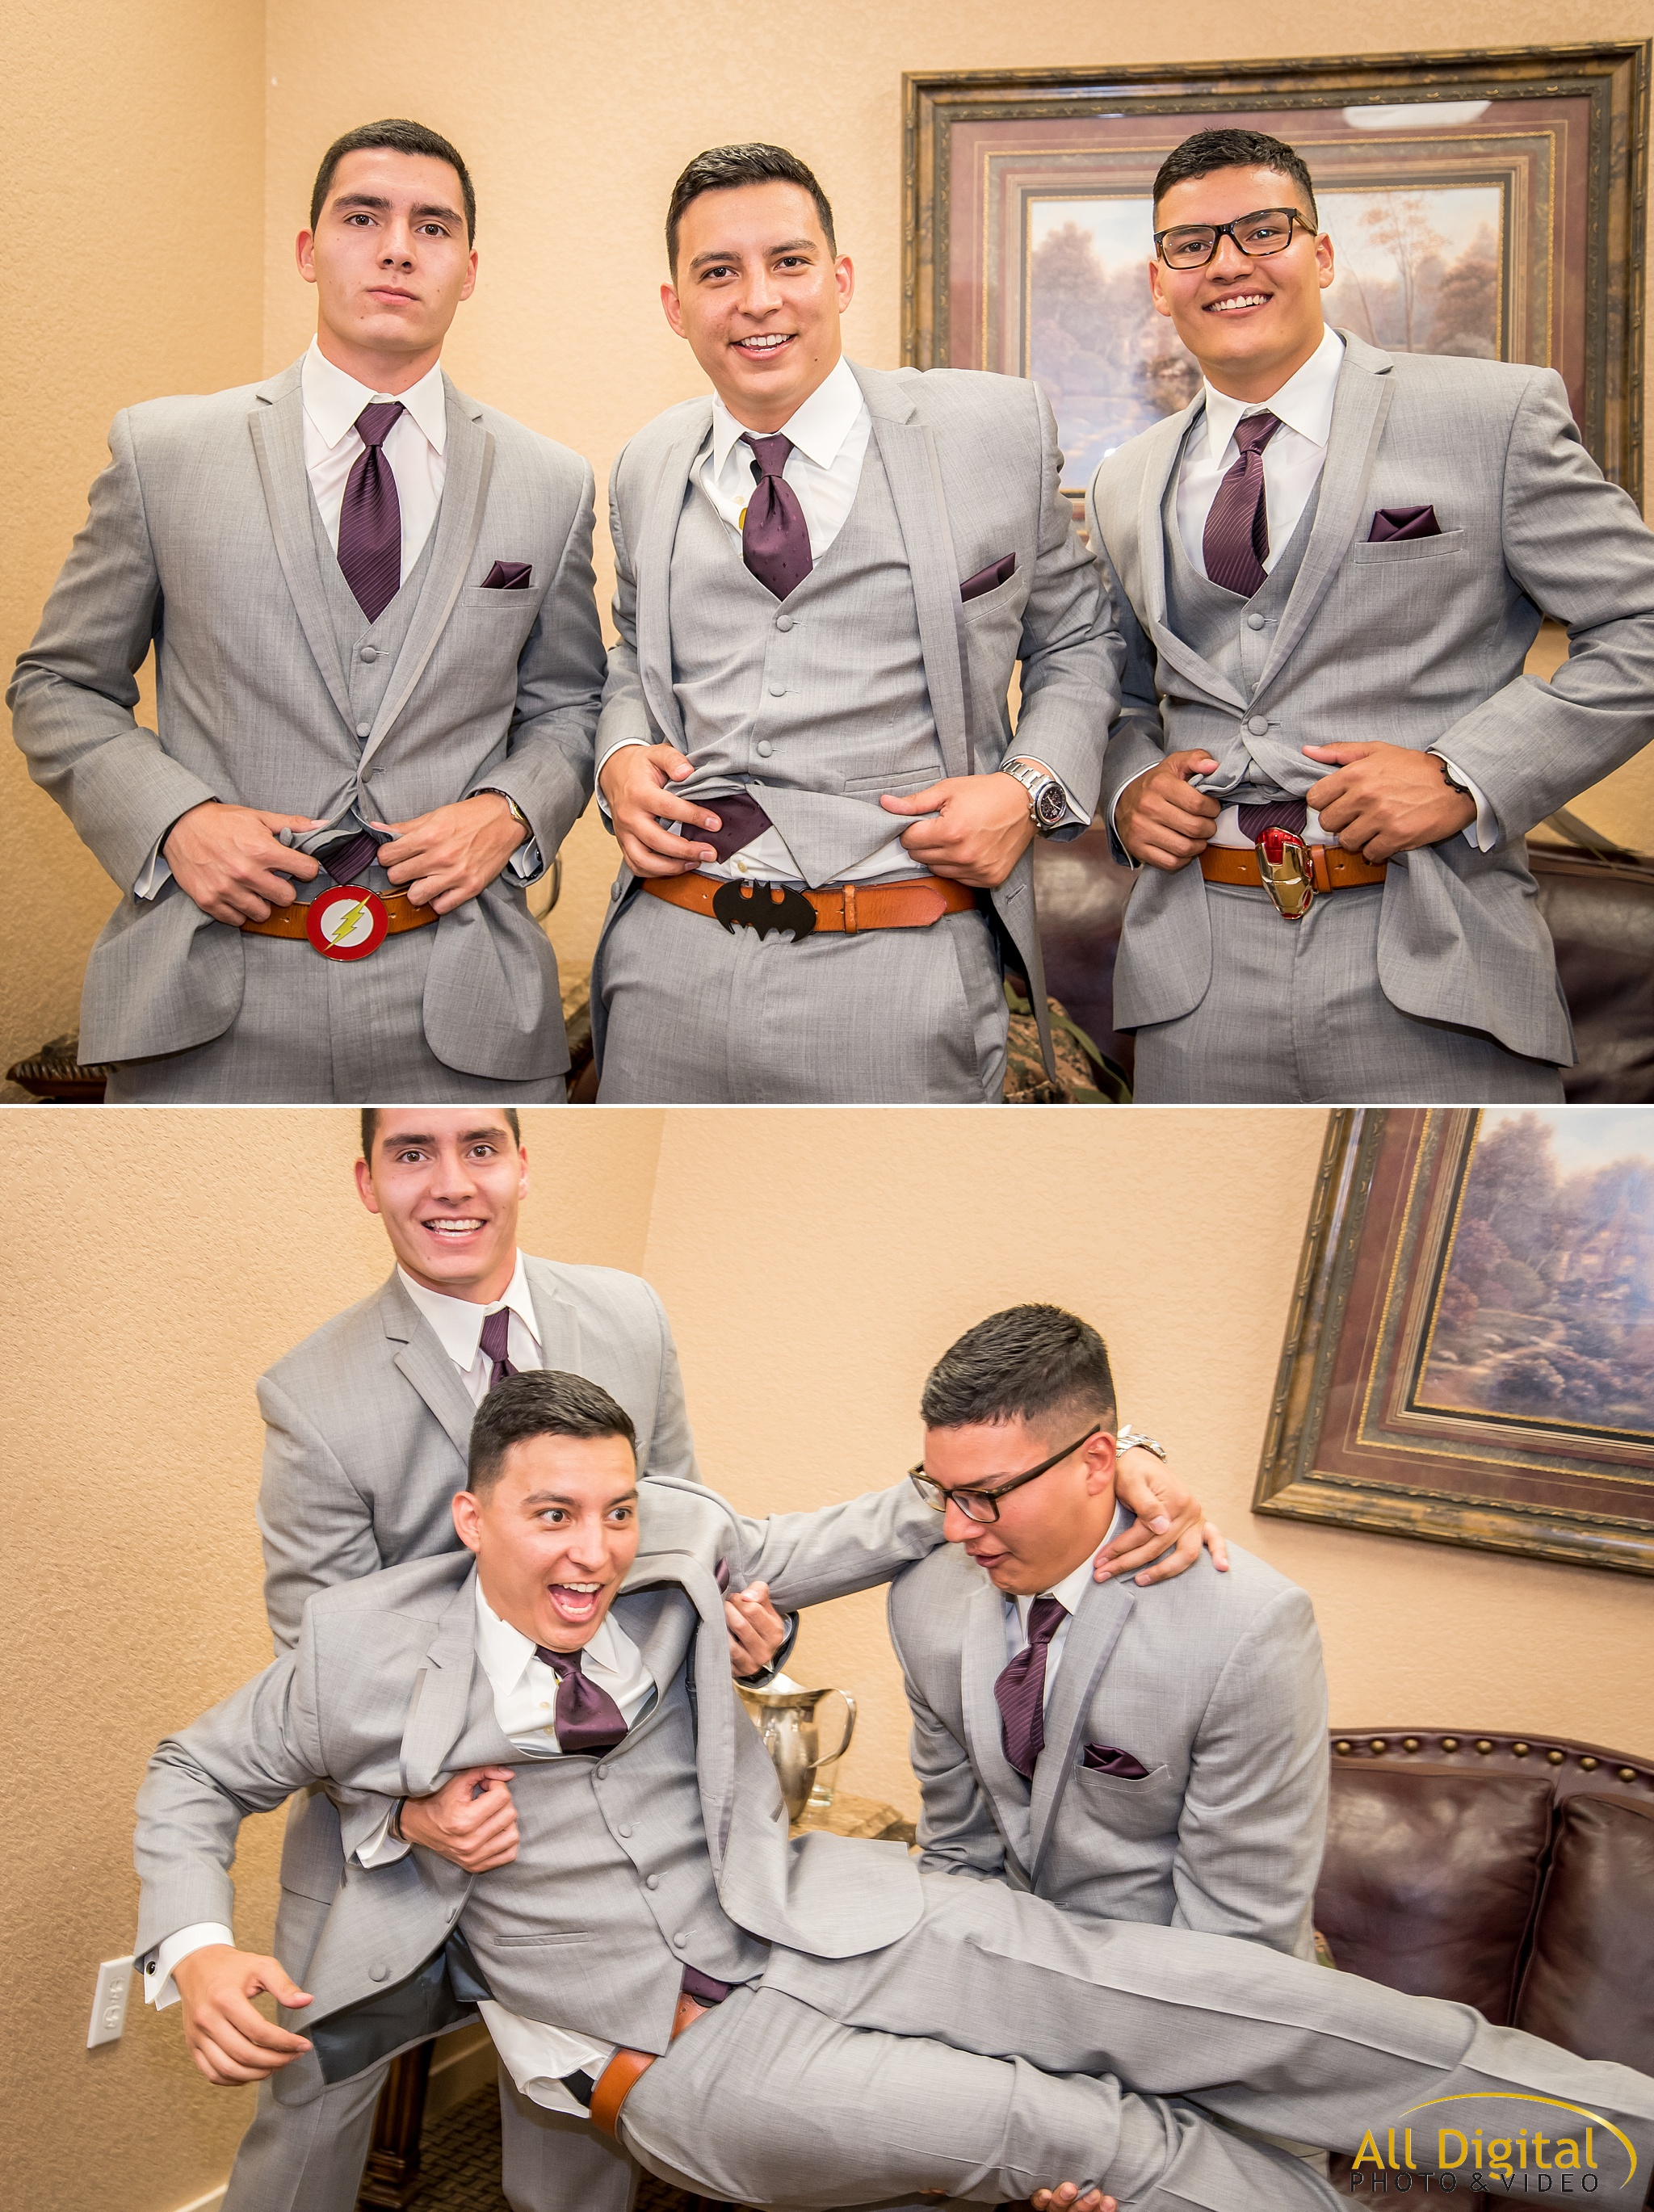 Groomsmen showing off their super hero skills.